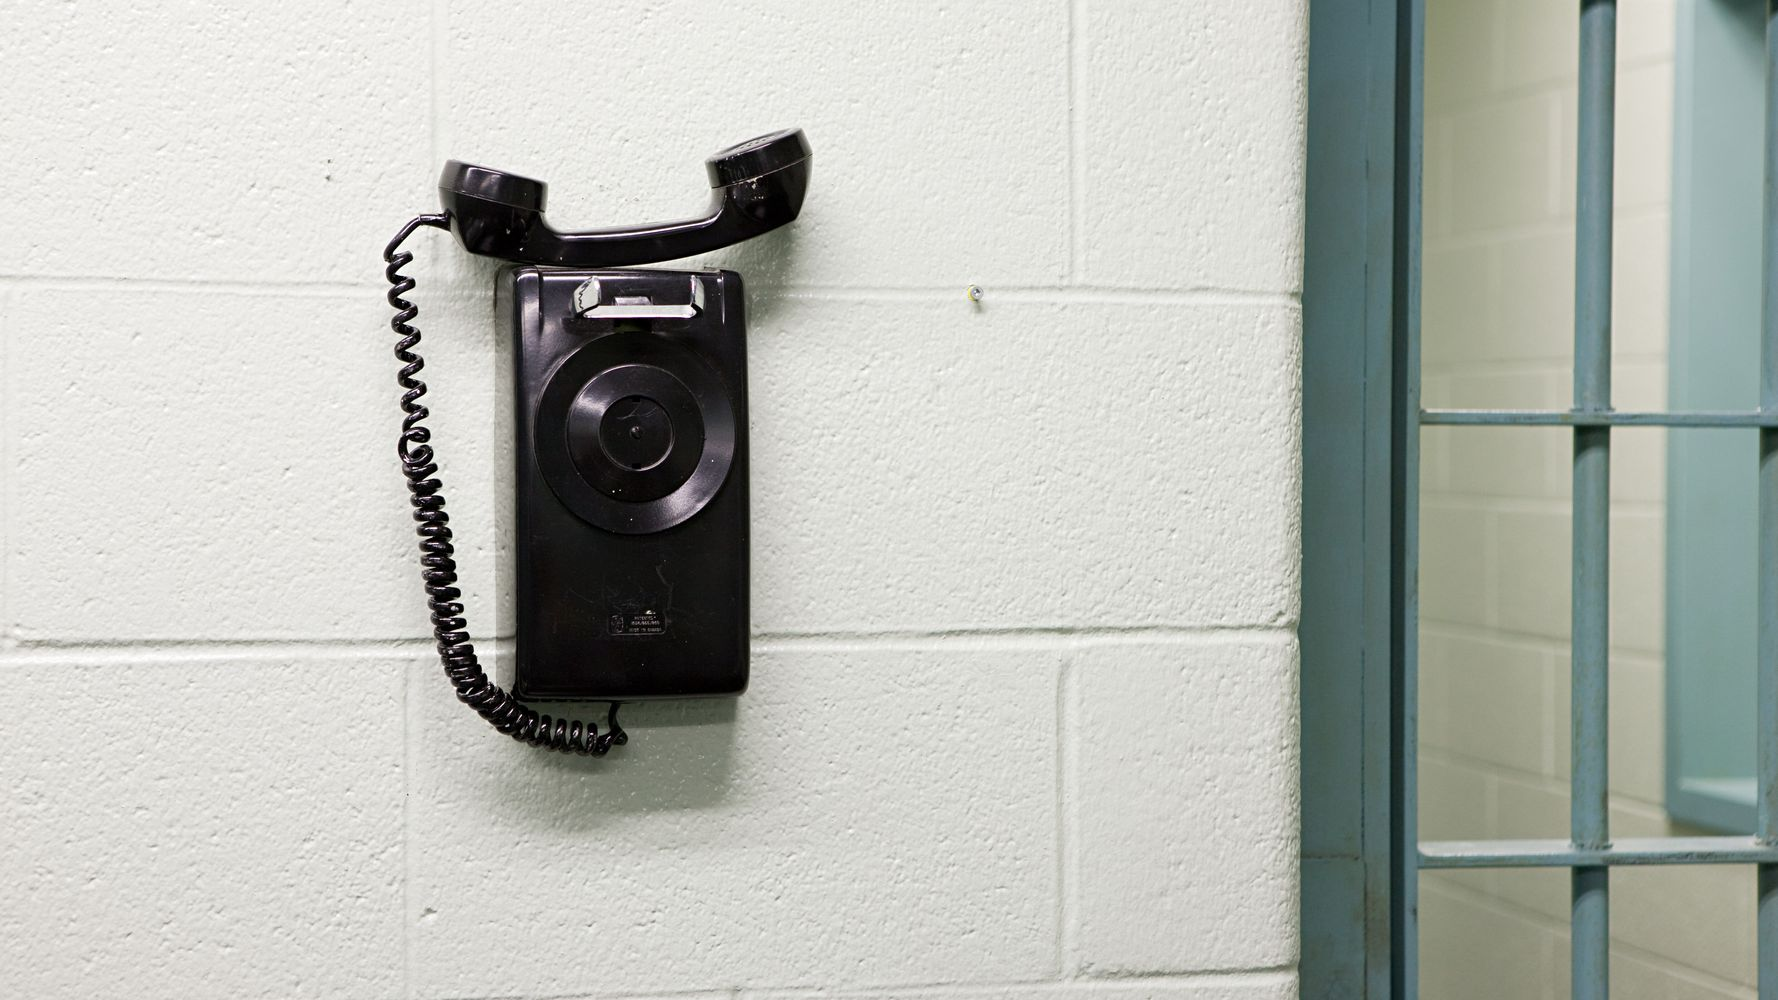 Connecticut Becomes 1st State To Make All Prison Phone Calls Free - HuffPost